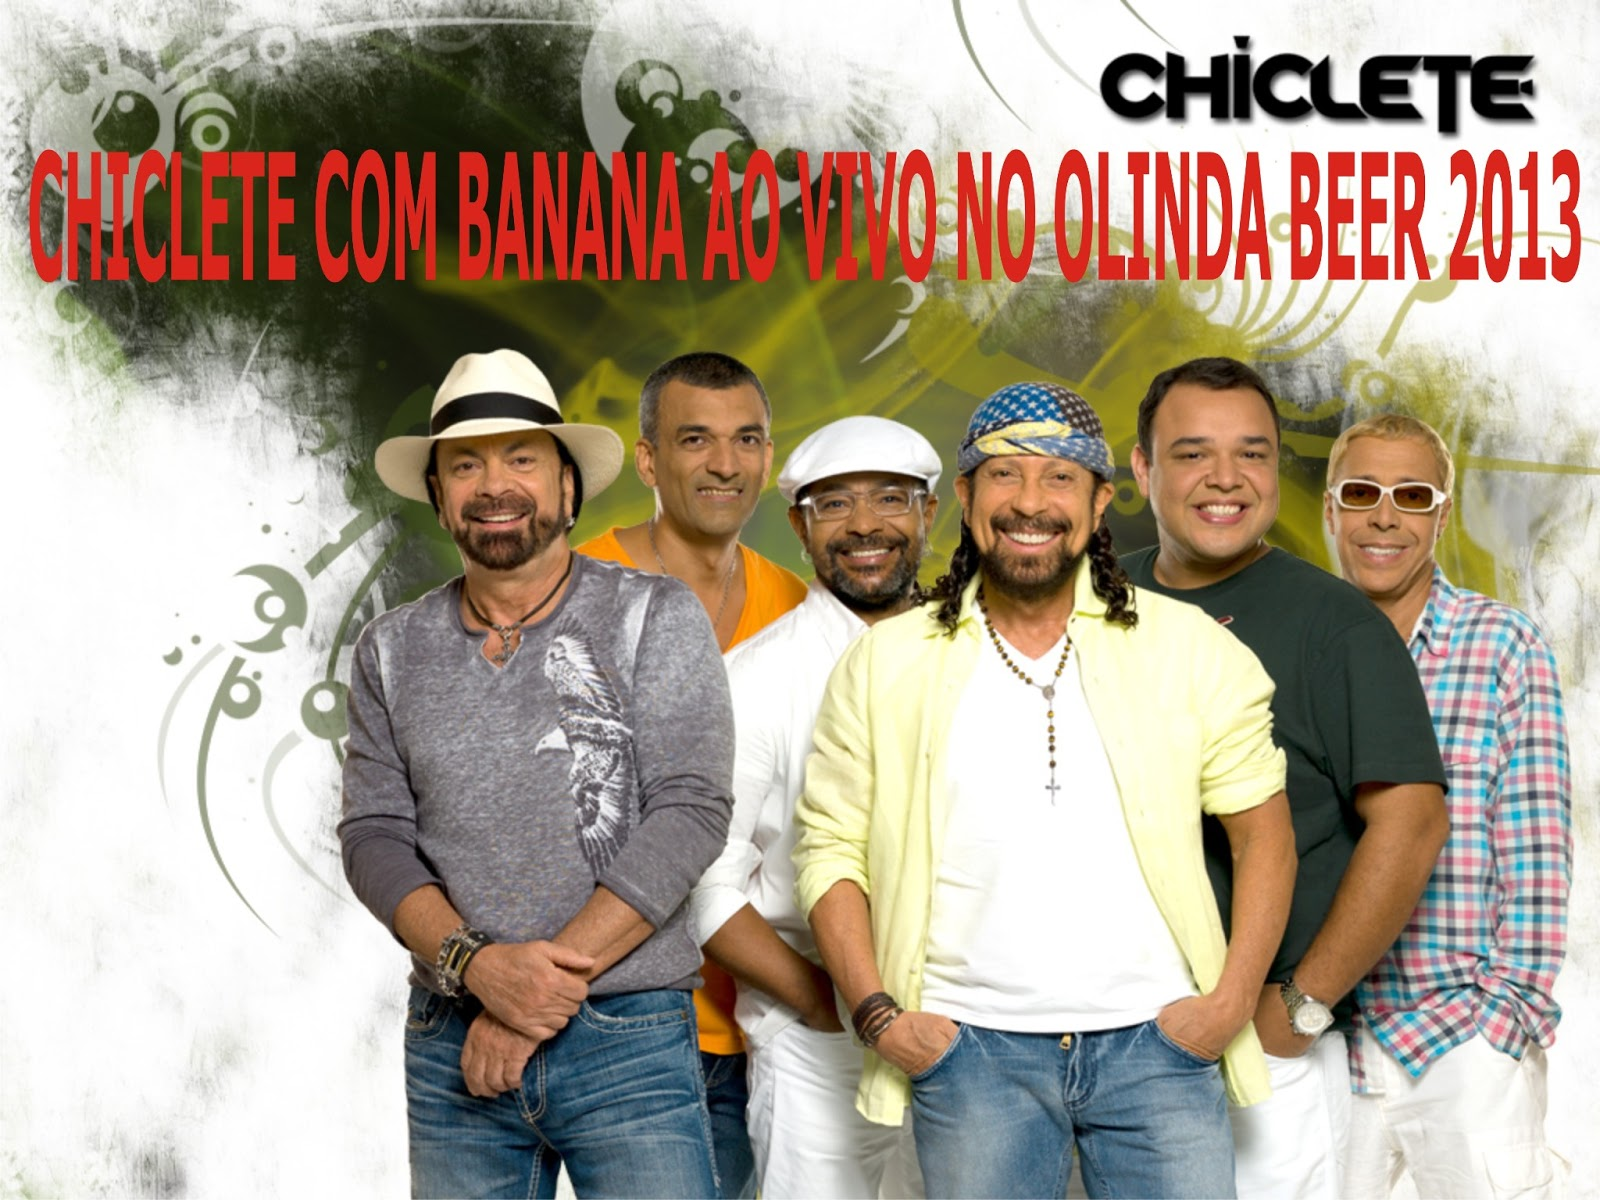 chiclete com banana ao vivo 2013